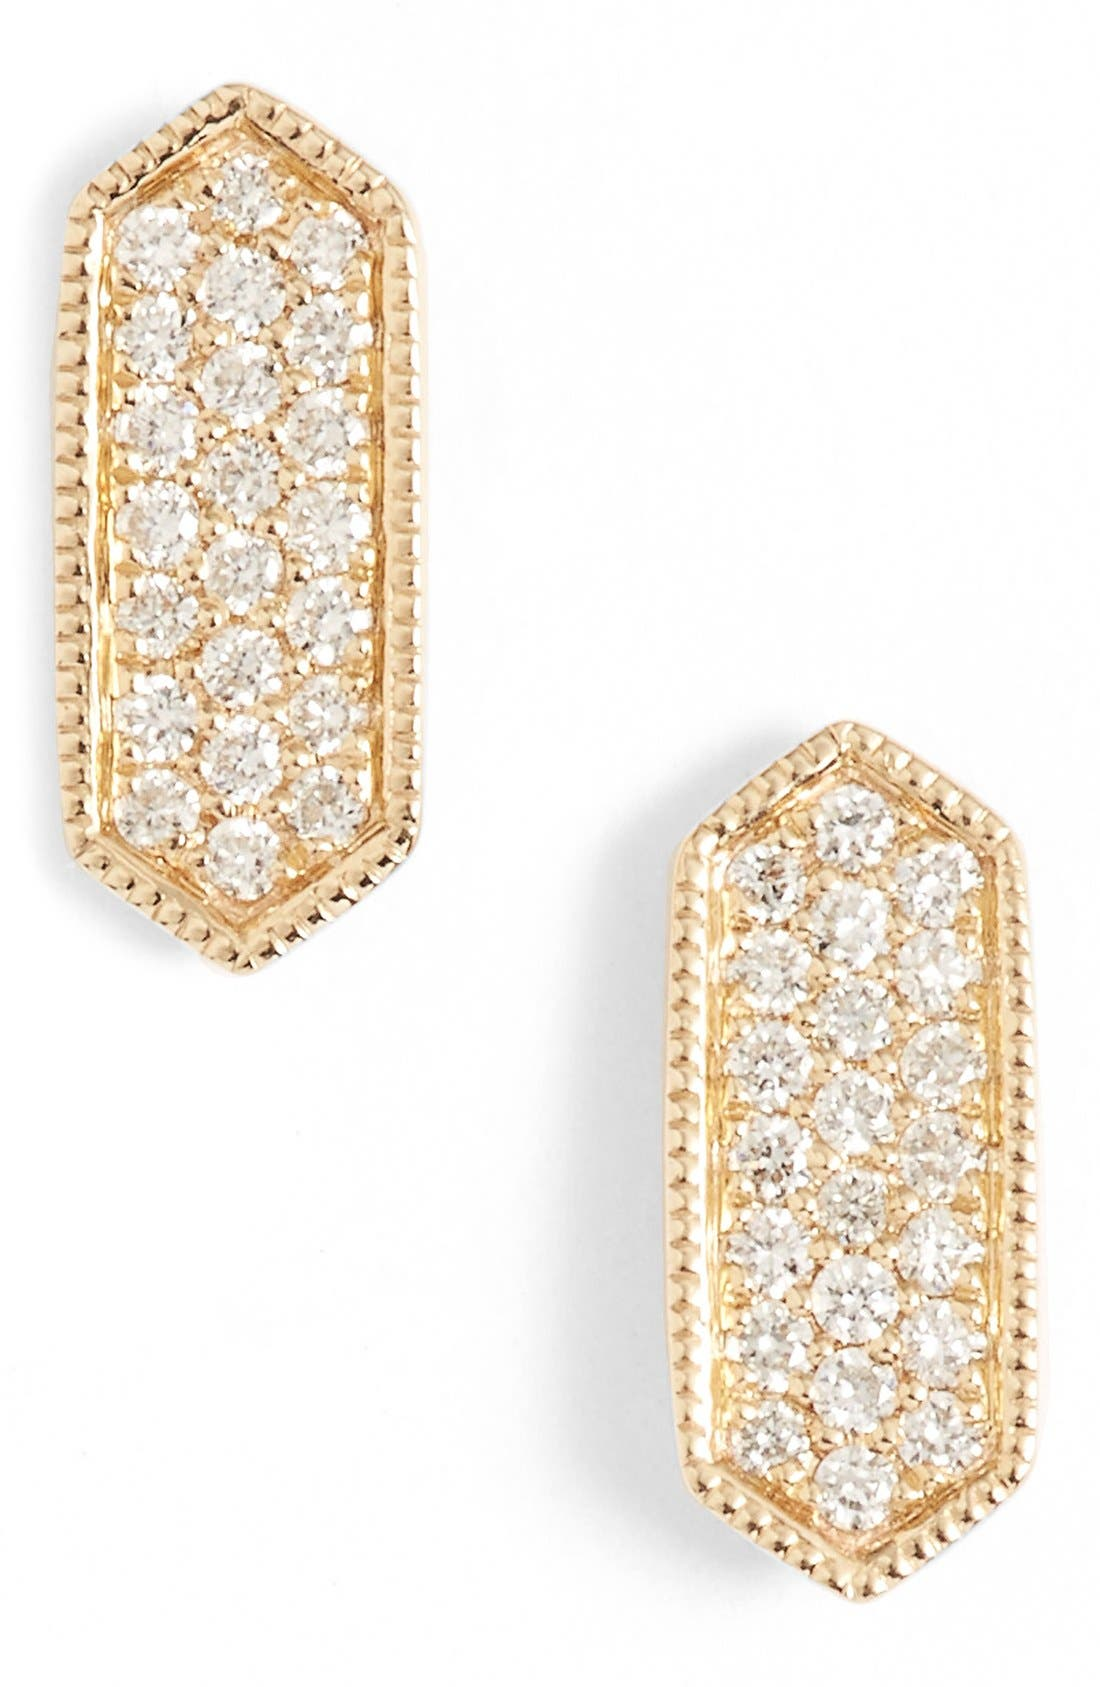 'Cynthia Rose' Diamond Pavé Stud Earrings,                             Main thumbnail 1, color,                             710